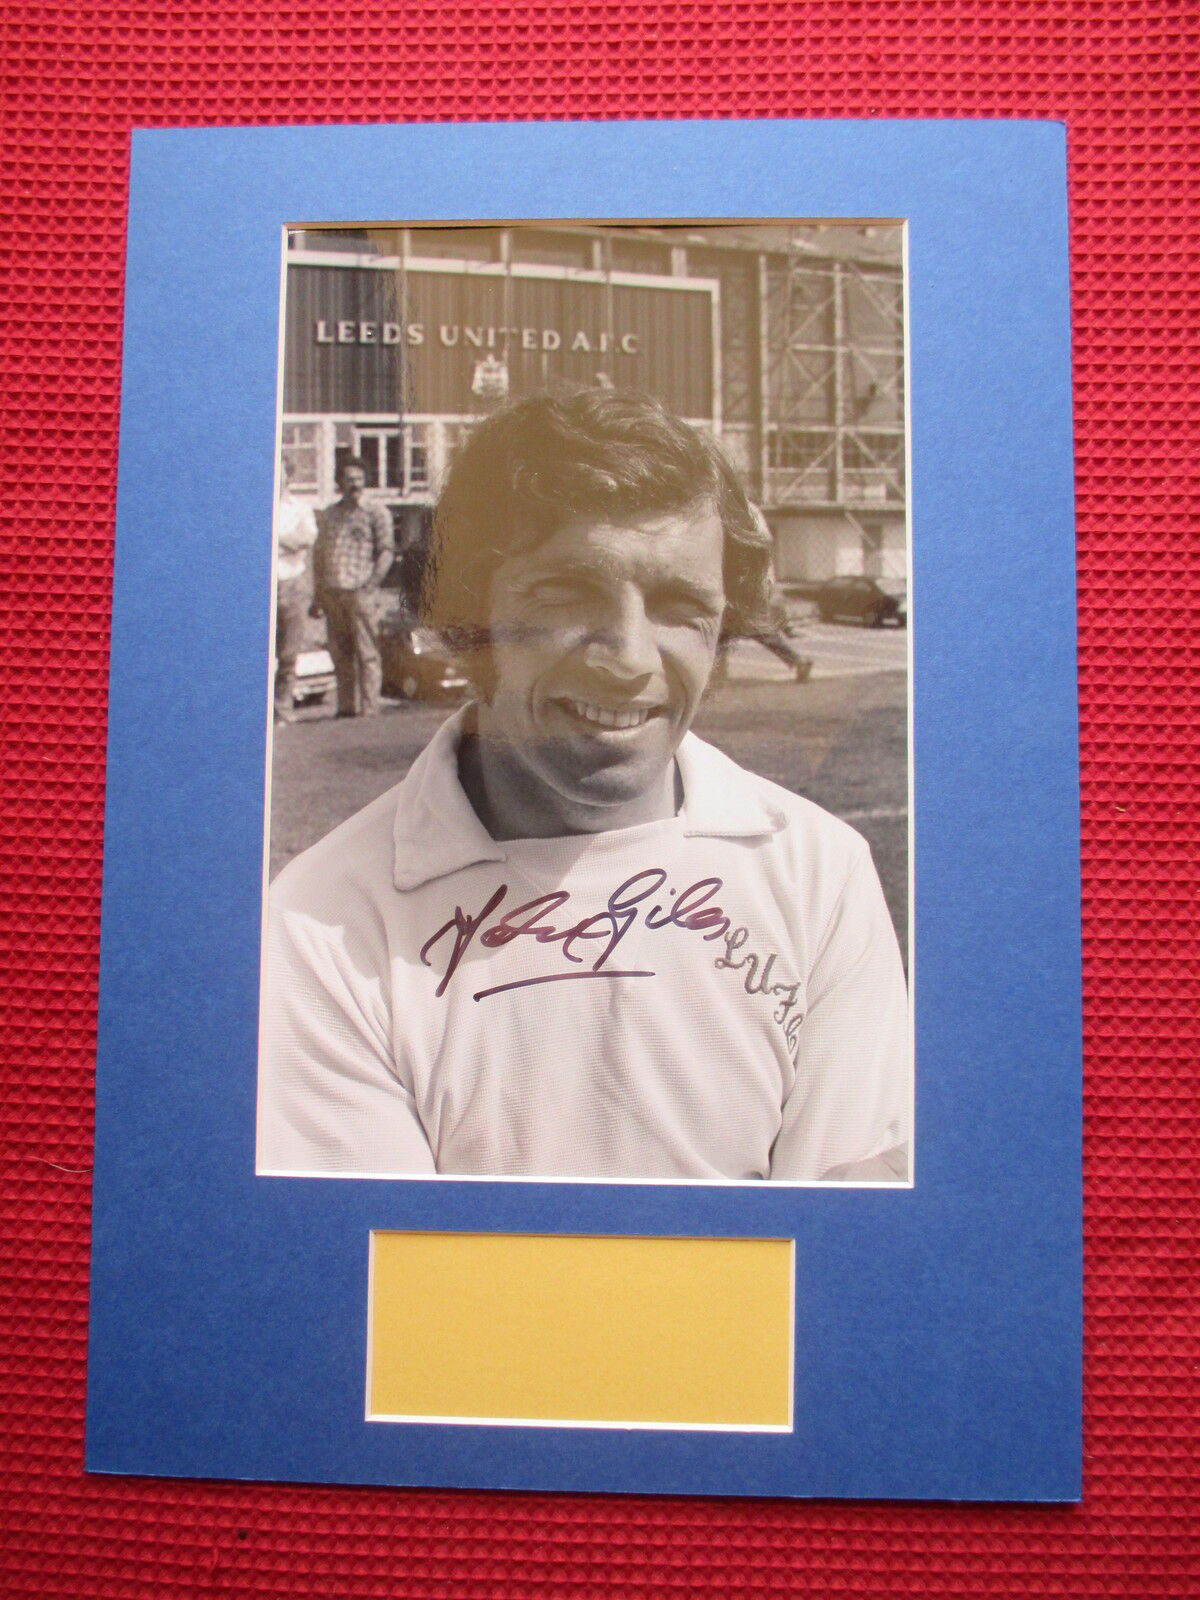 LEEDS UNITED LEGEND JOHNNY GILES AUTHENTIC SIGNED A3 MOUNTED PHOTO DISPLAY - COA